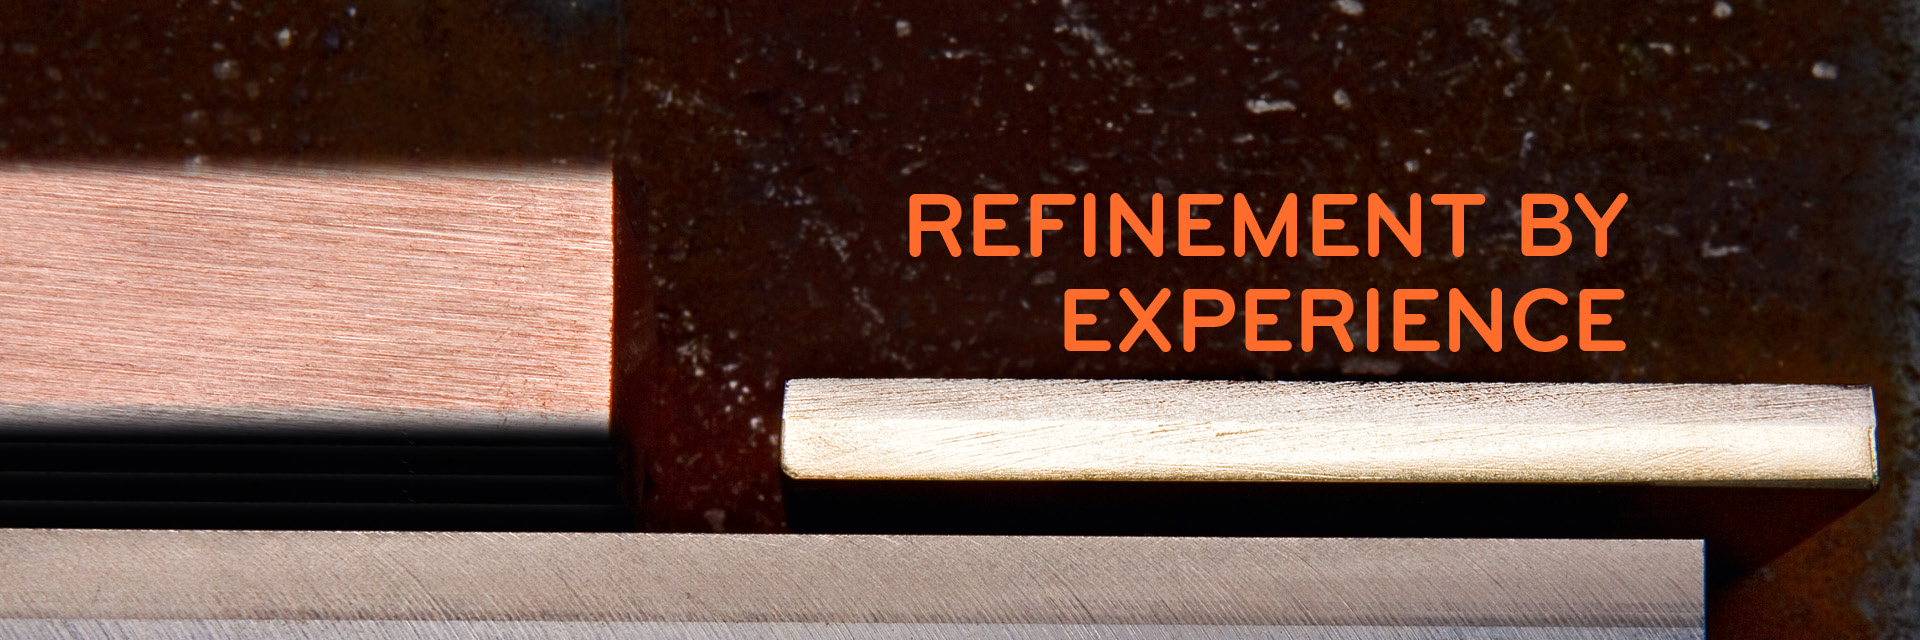 Refinement by experience